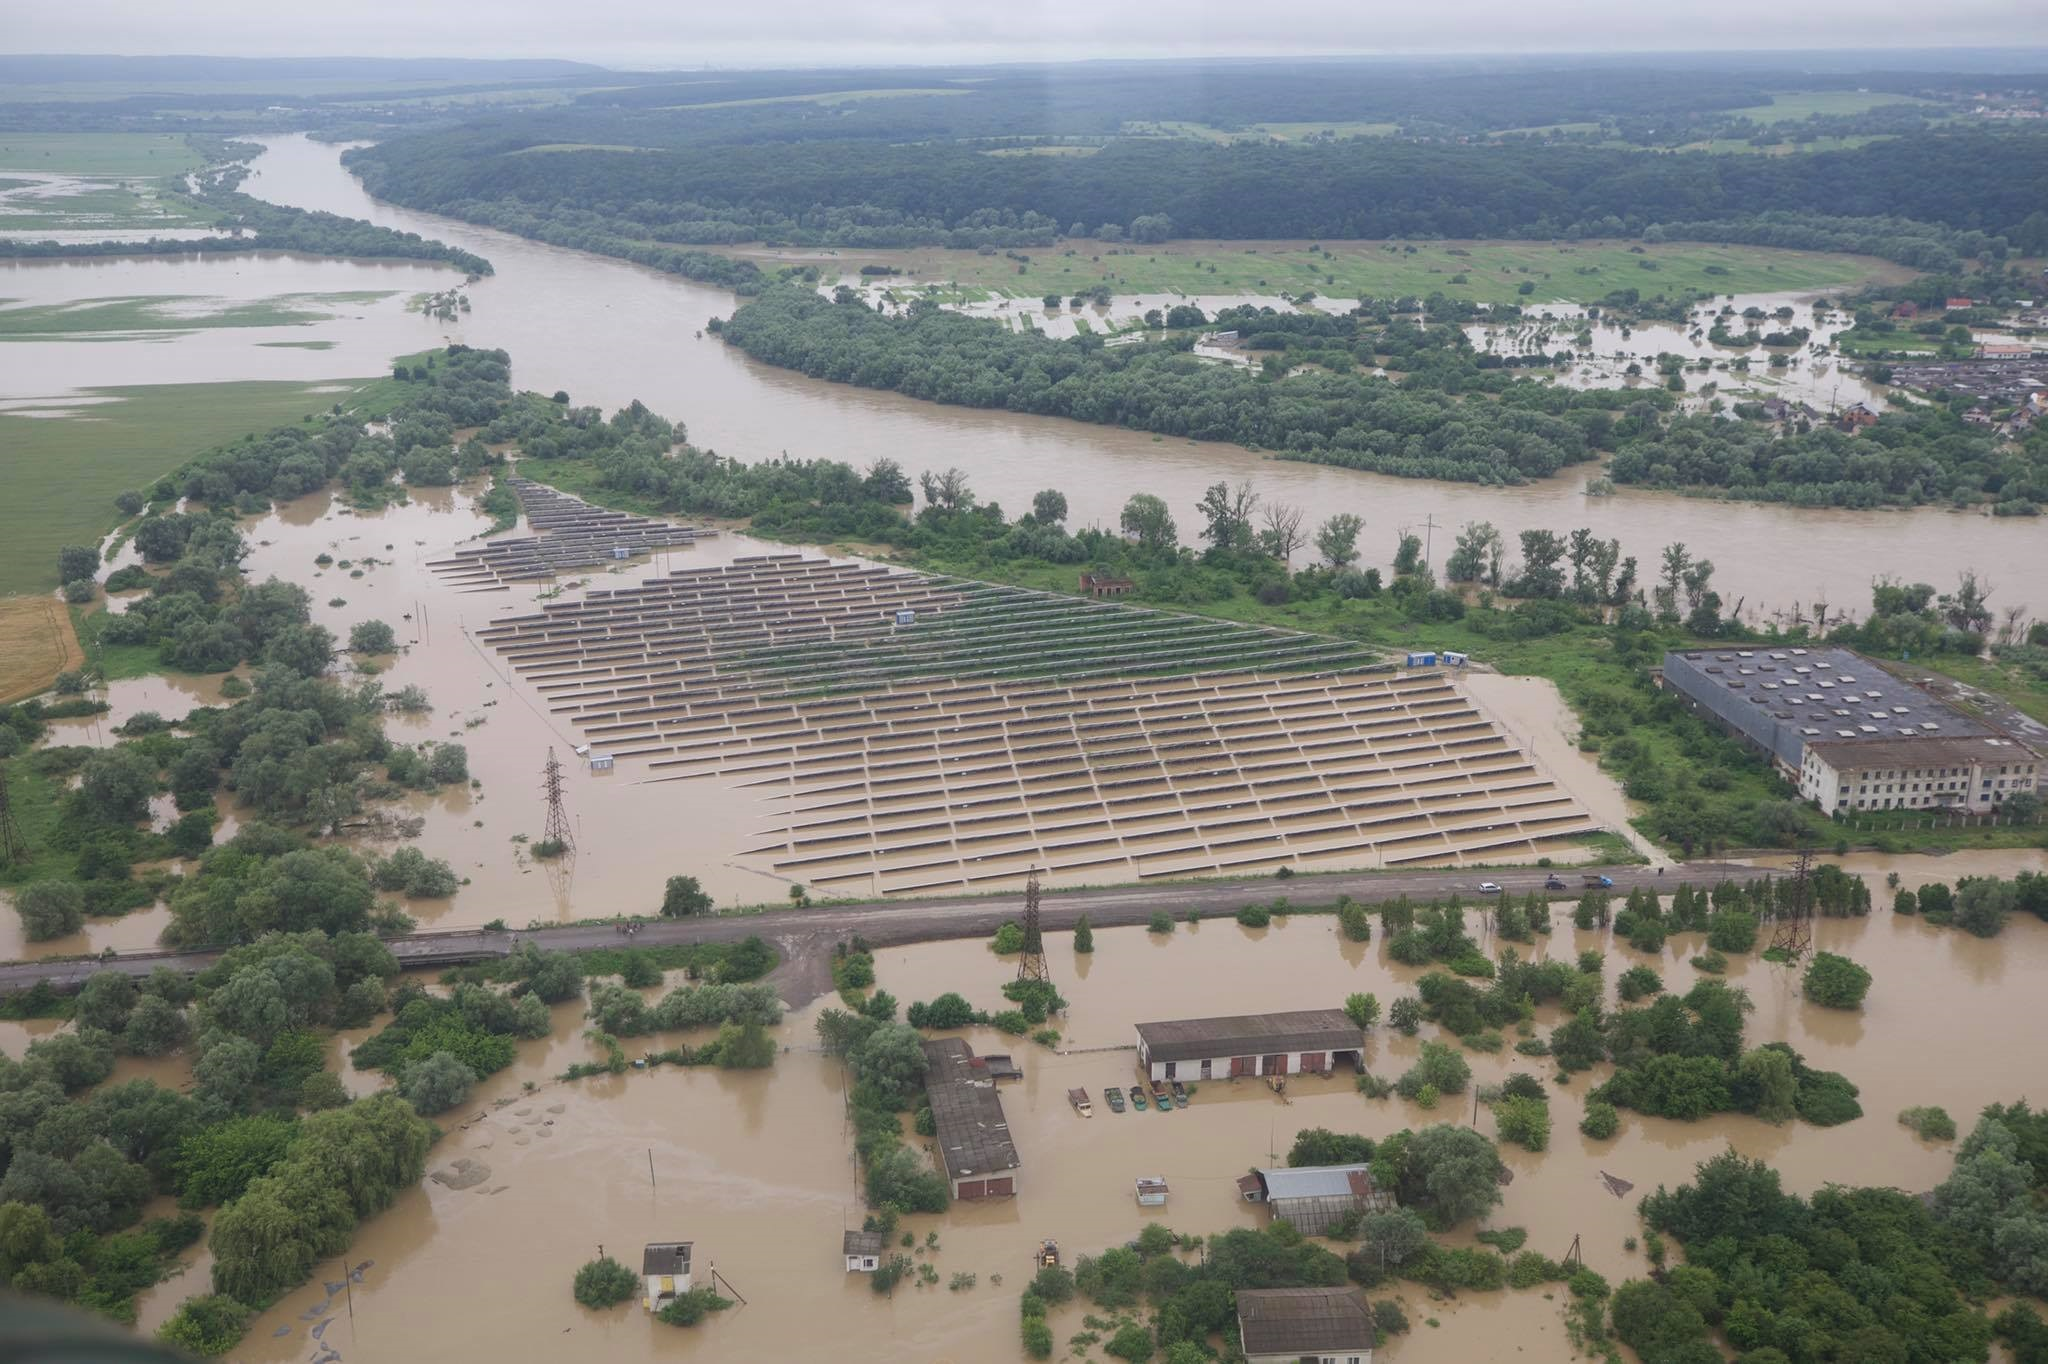 Extensive flooding in western Ukraine, June 2020.